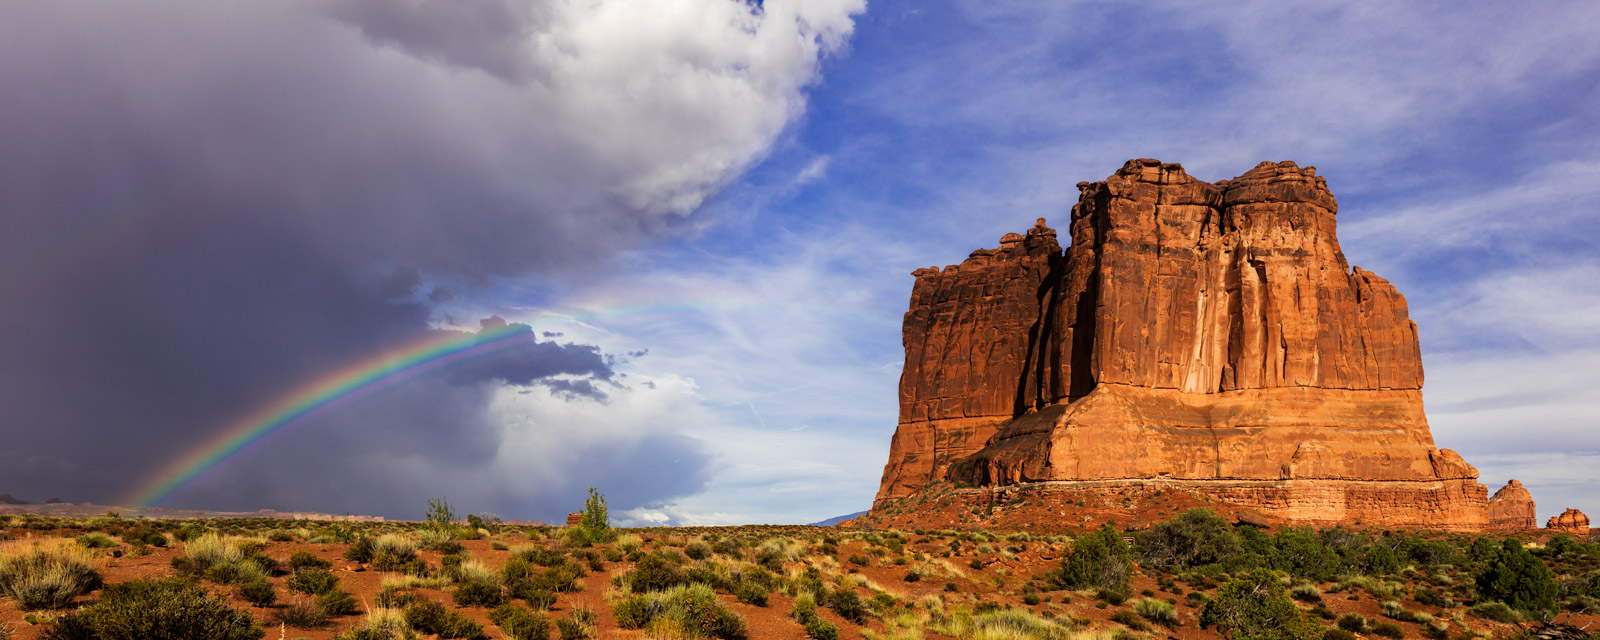 Utah, Arches, National Park, red rock, rainbow